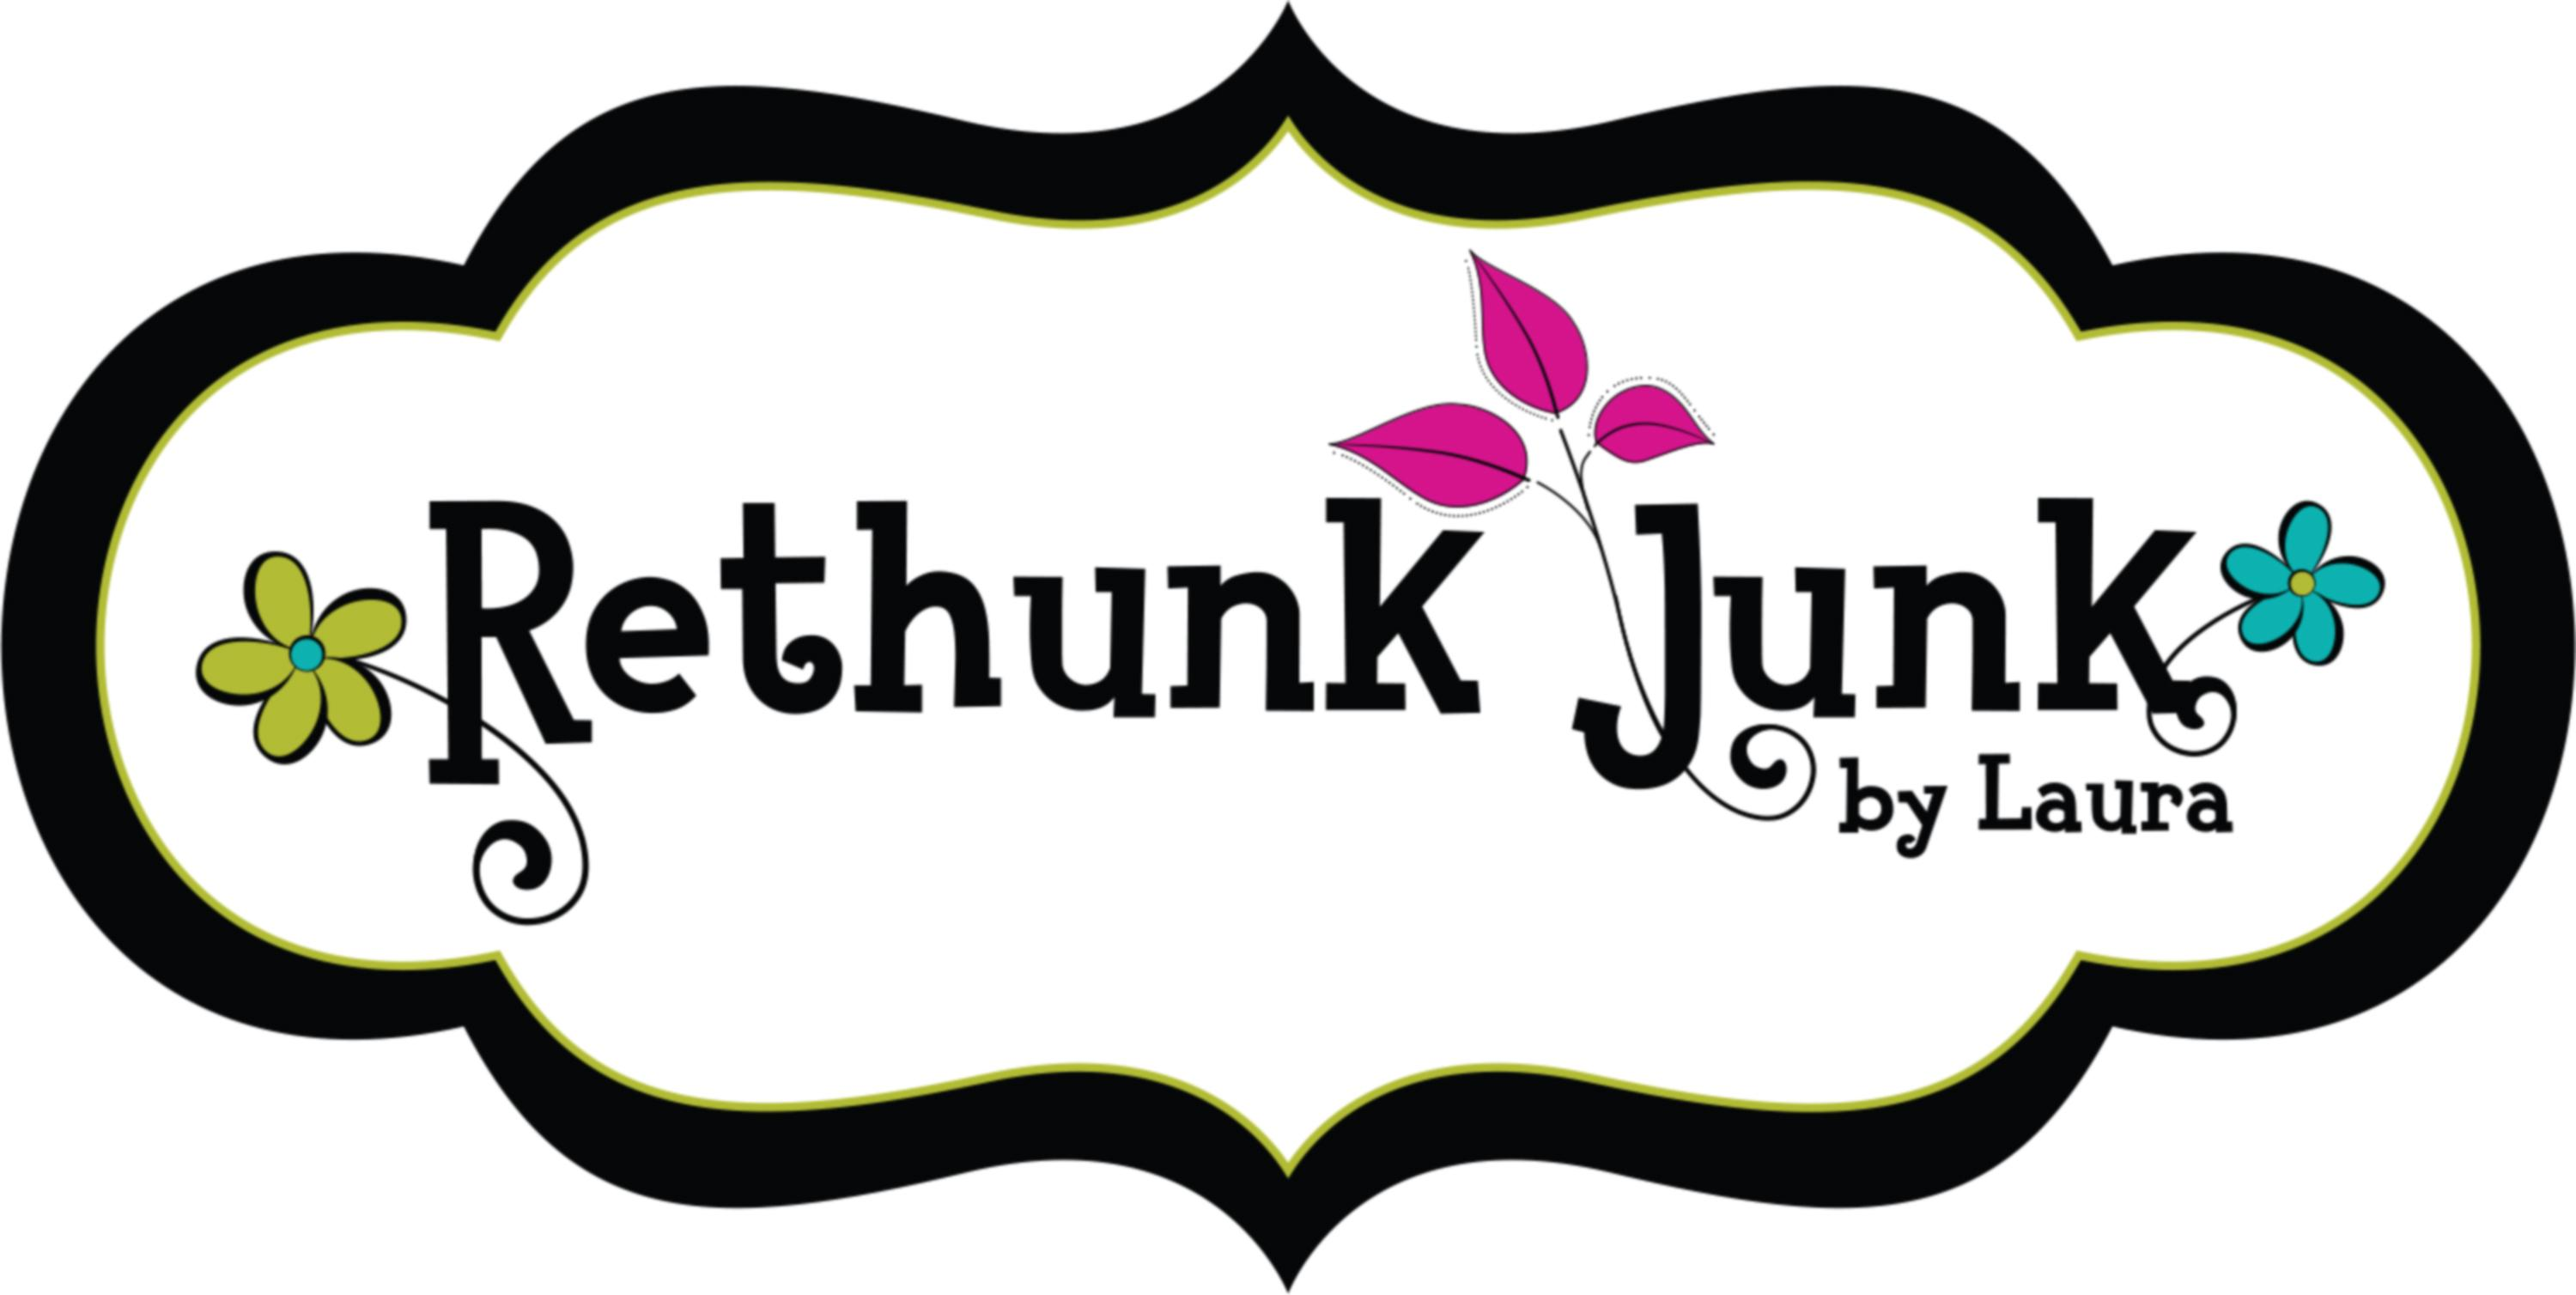 Rethunk Junk by Laura